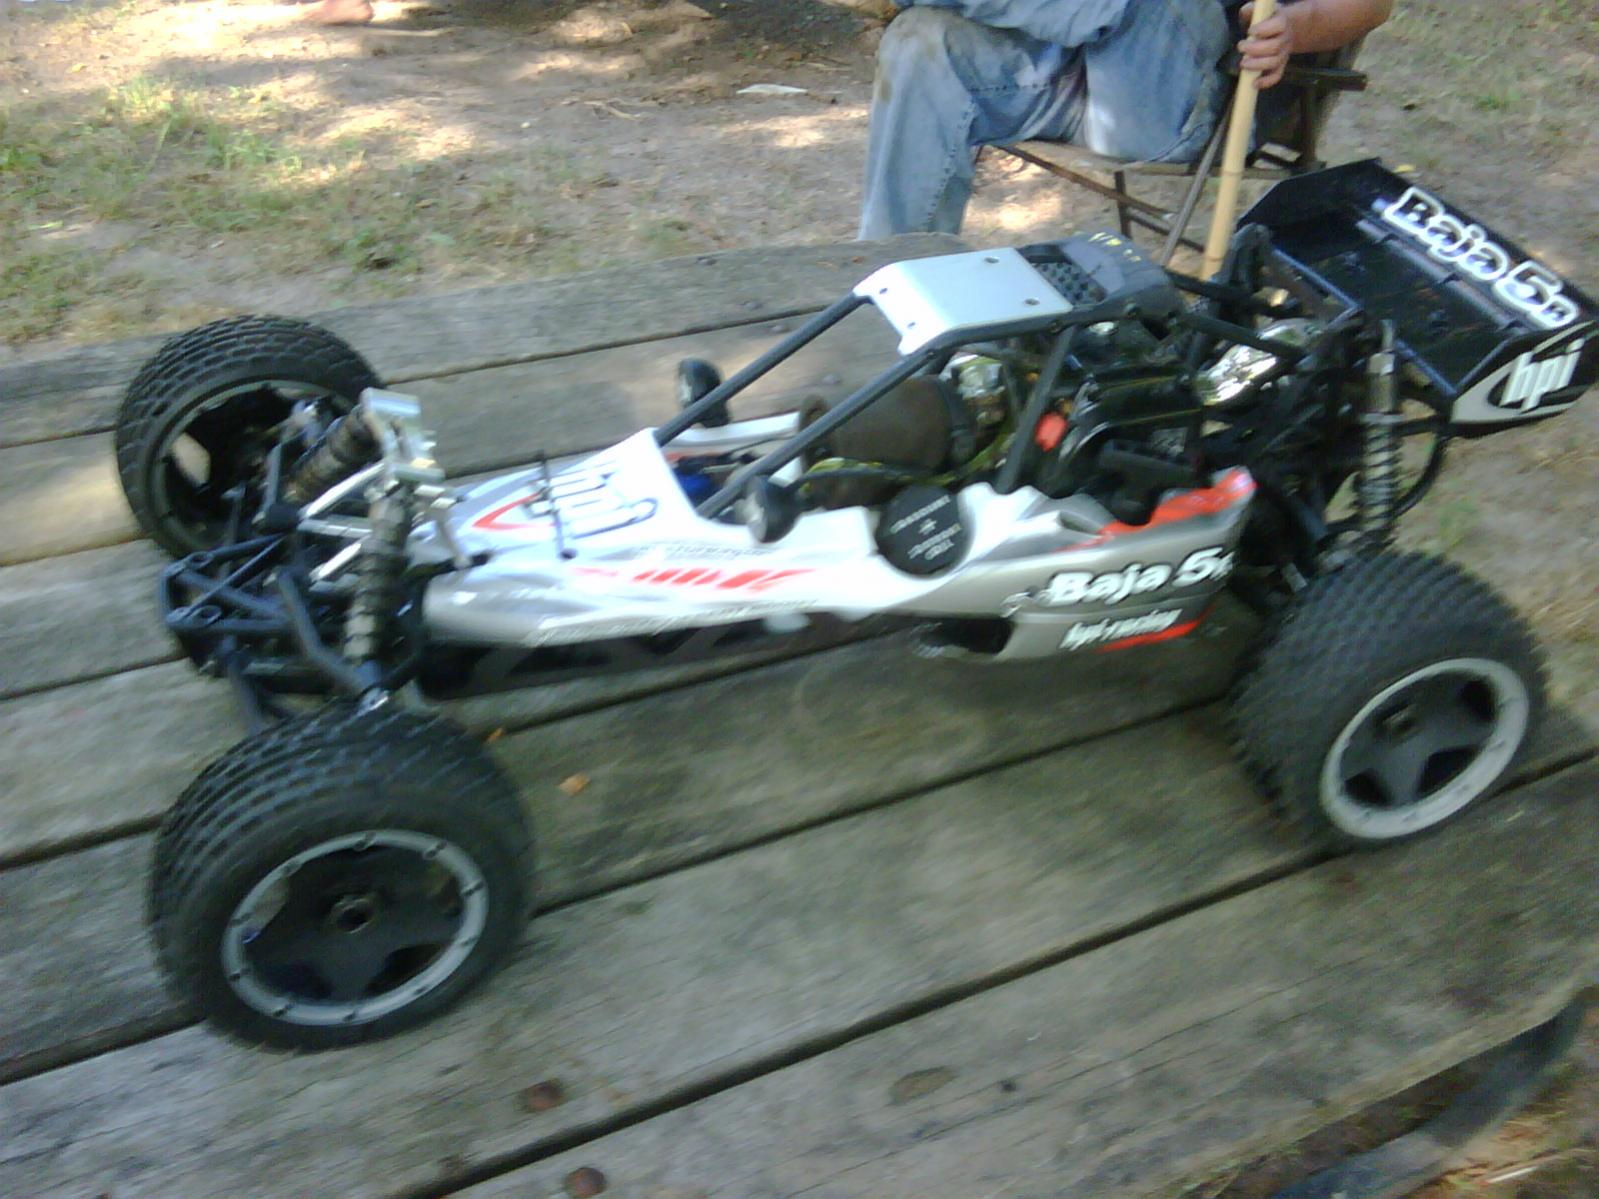 Baja 5 b for sale indiana submited images